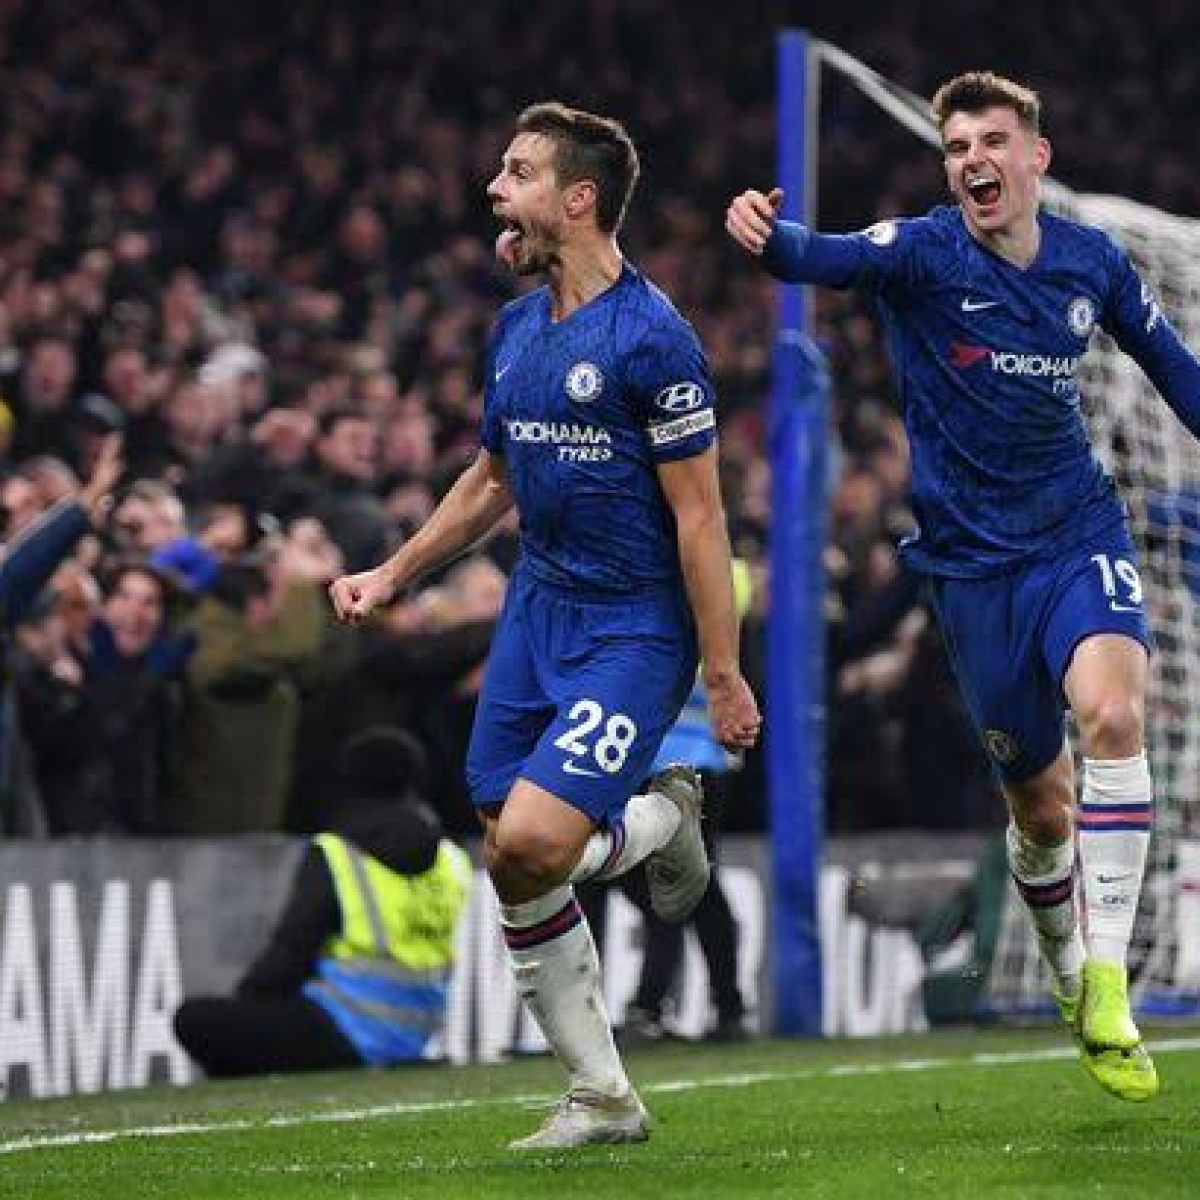 Premier League: Chelsea's Olivier Giroud, Marcos Alonso prove gaffer Lampard's selection right against Tottenham